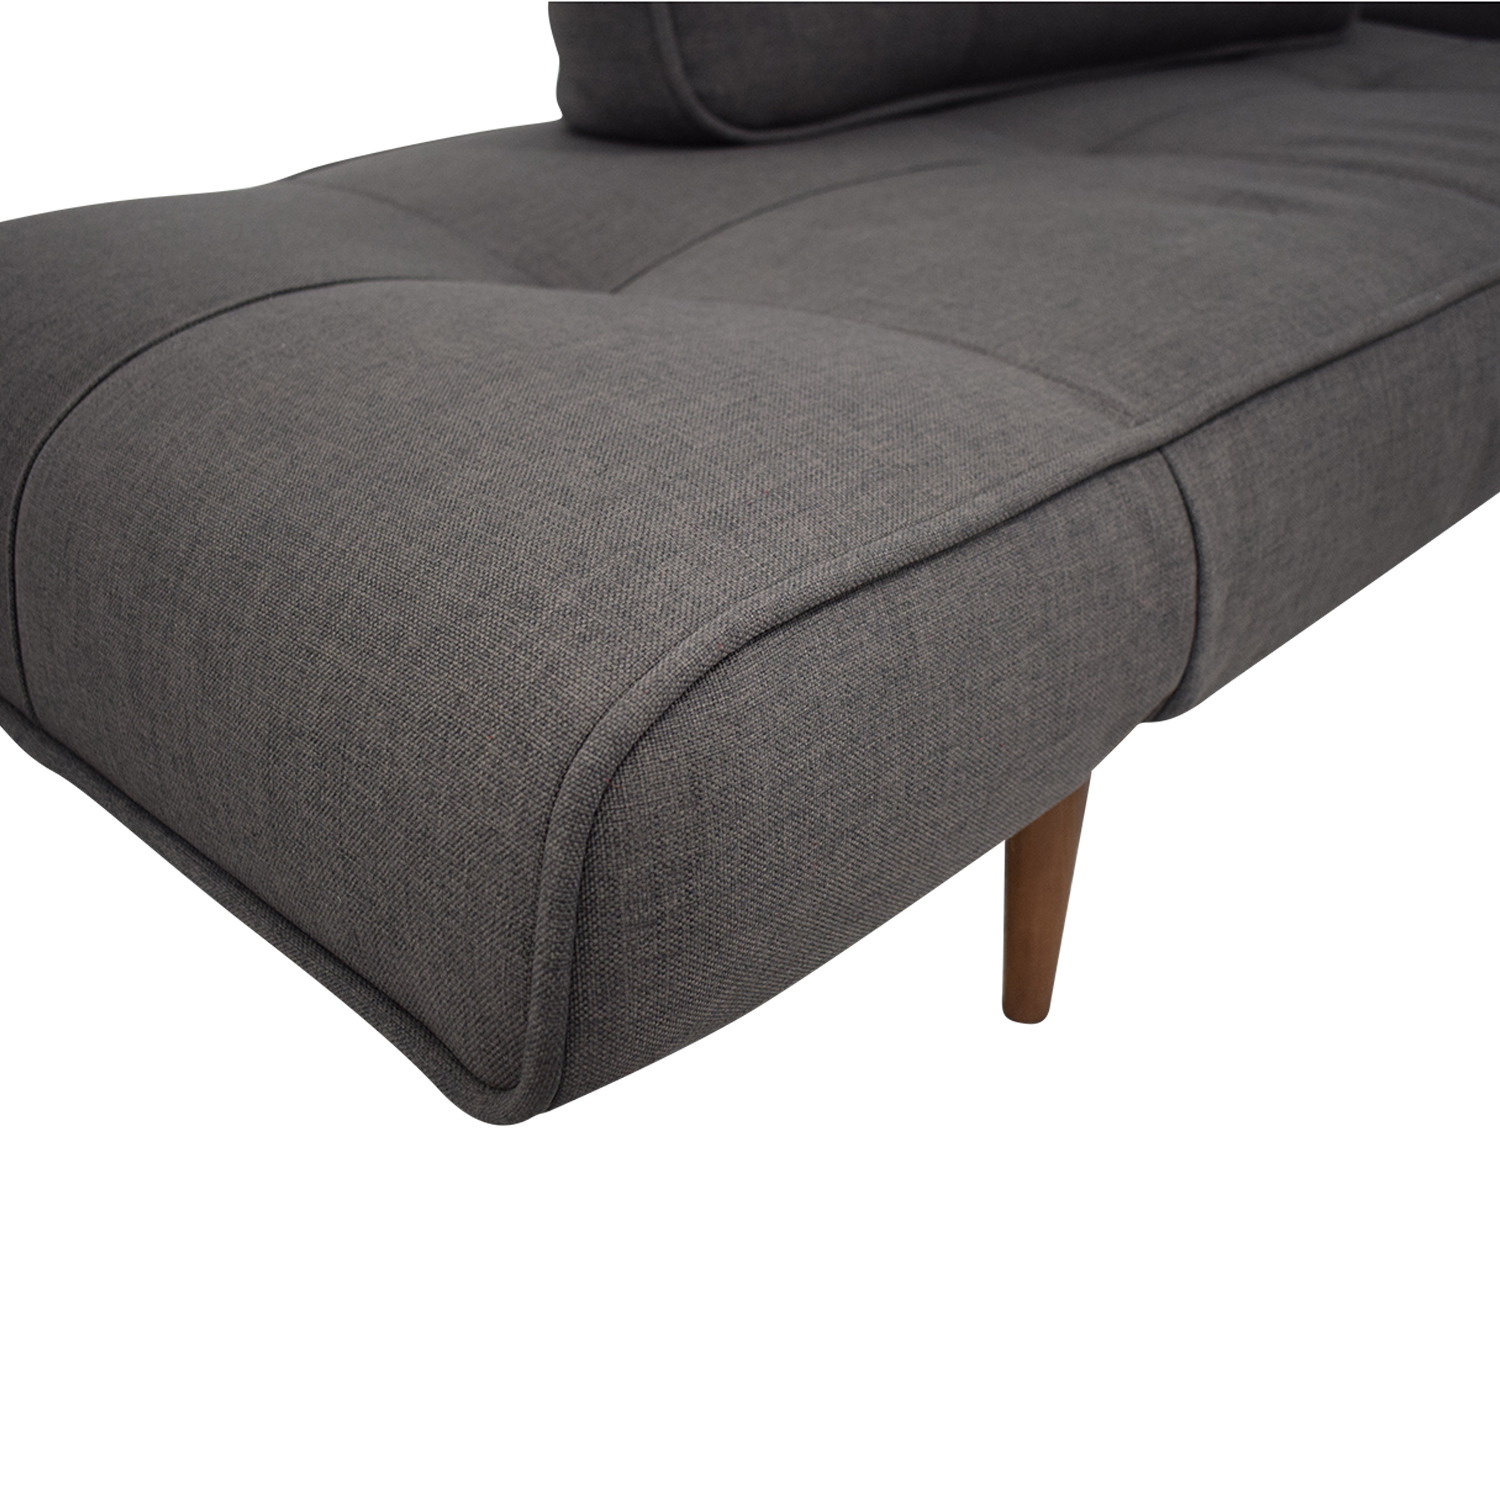 Innovation Living Innovation Living Zeal Convertible Daybed Sofa Beds